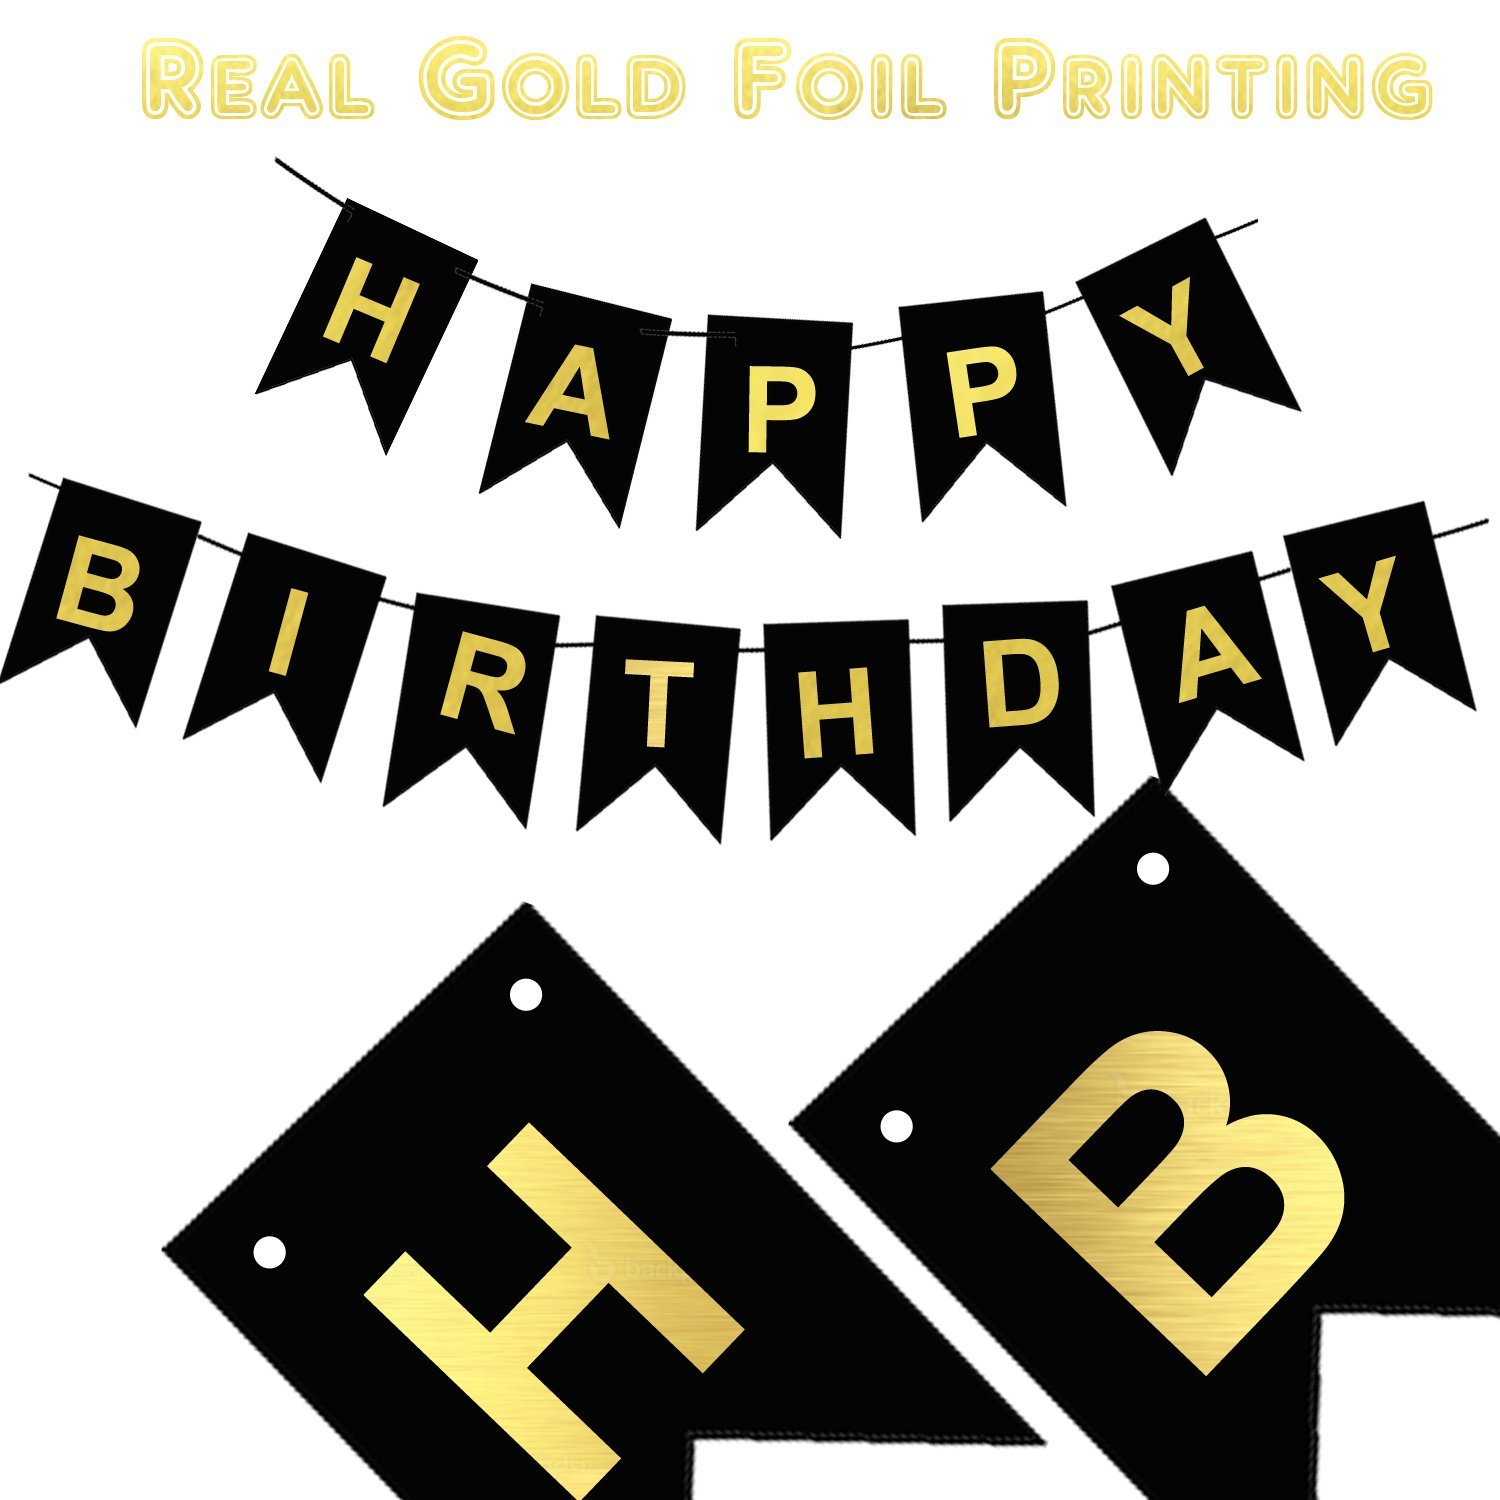 Happy Birthday Banner | Happy birthday banner gold | Adult Birthday Sign | Fabulous Gold Foil Printed Birthday Decoration | Black And Gold Card Stock-USA BRAND!!